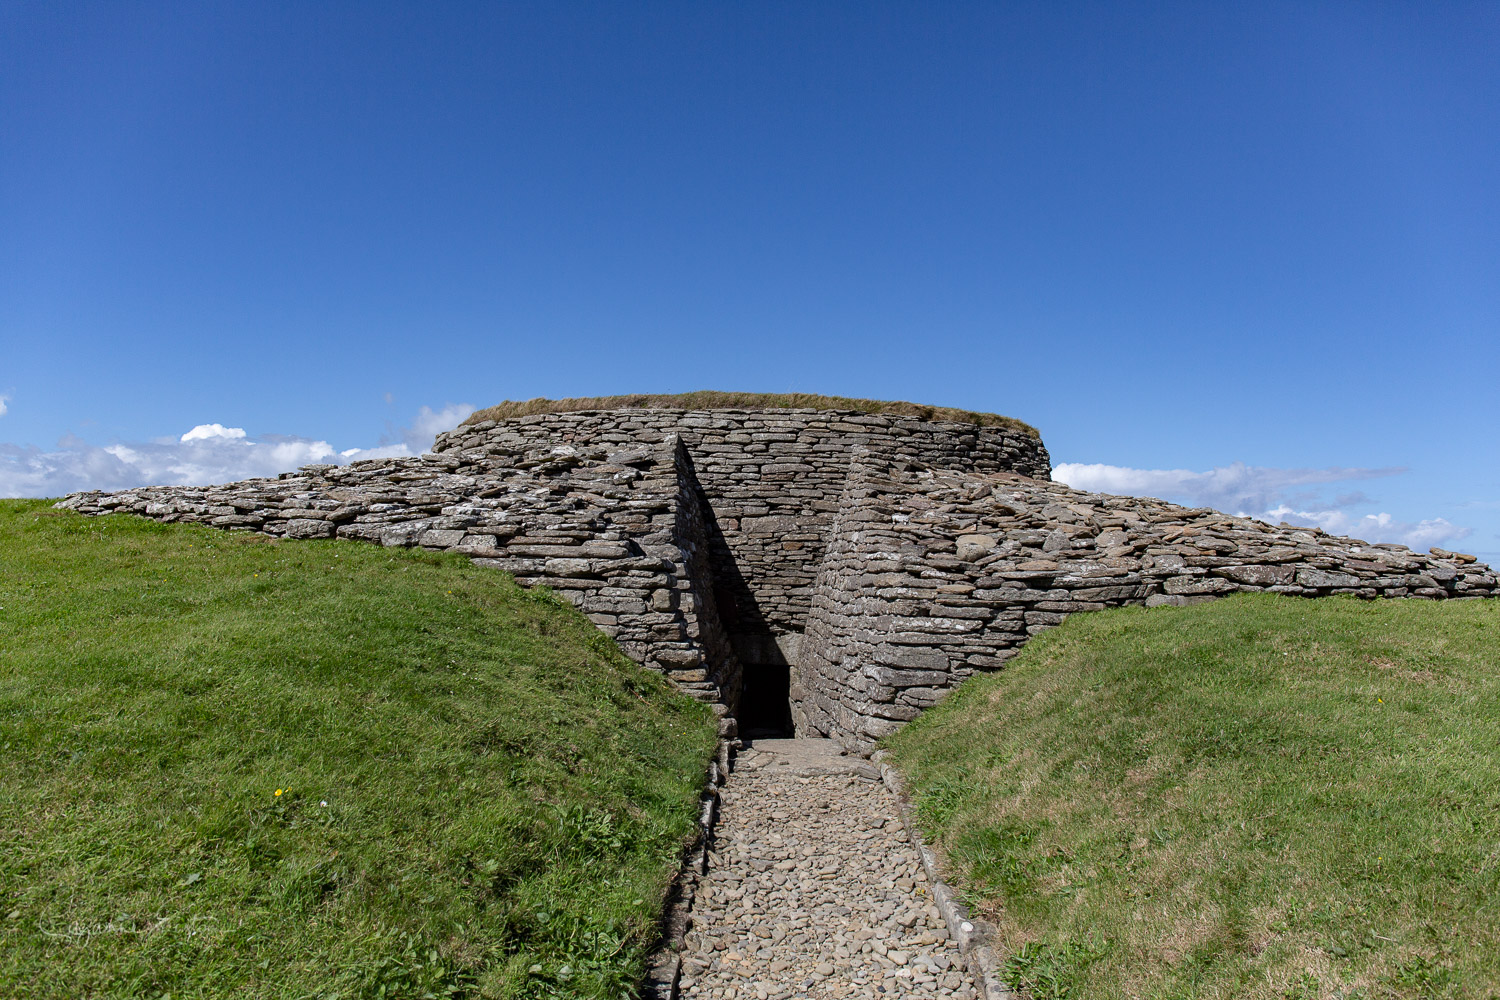 Entrance to te Quoyness Chambered cairn